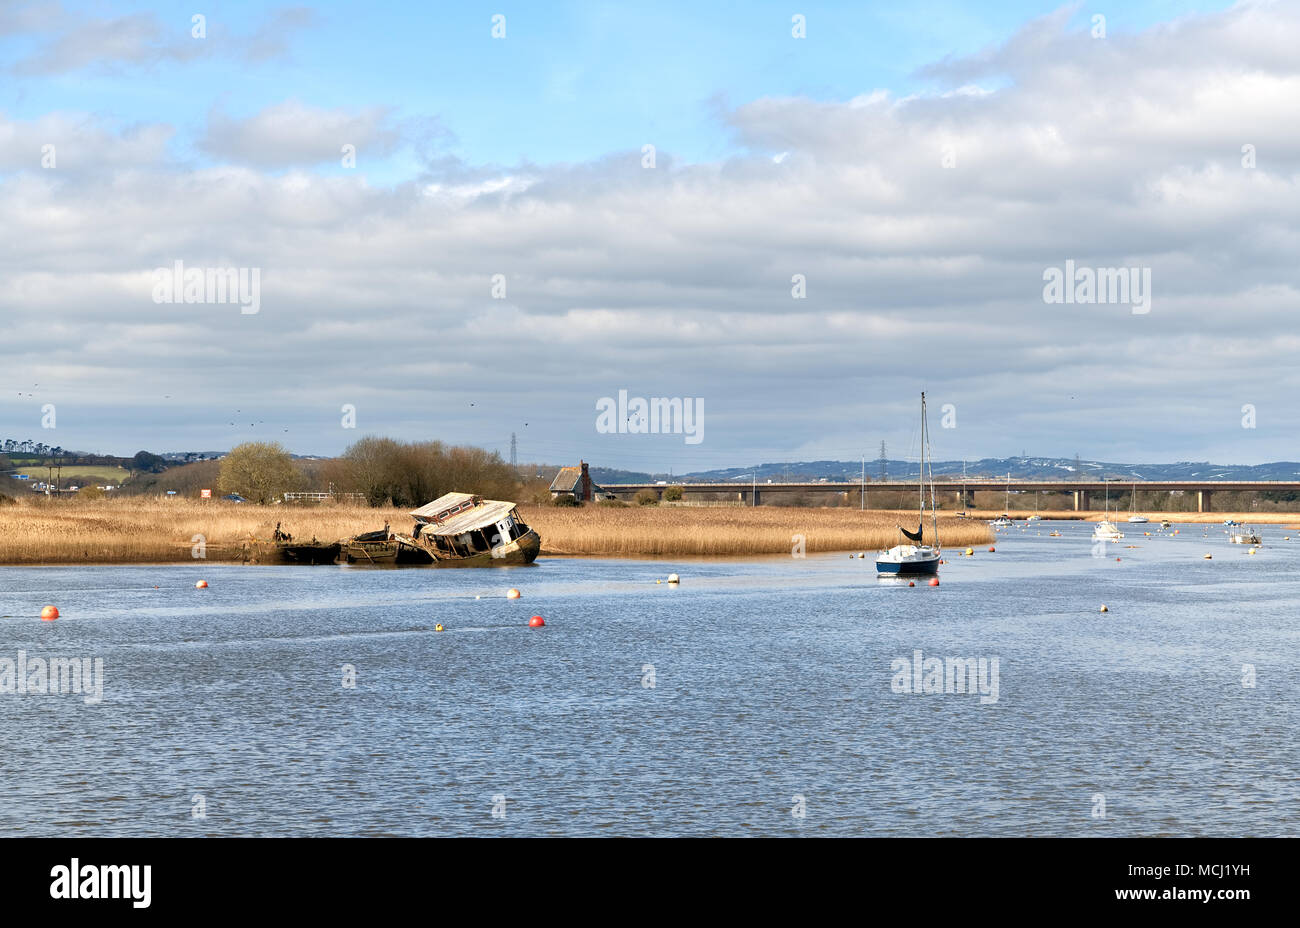 The abandoned hulks of three vessels on the banks of the River Exe opposite Topsham in Devon, England. 21 March 2018. - Stock Image